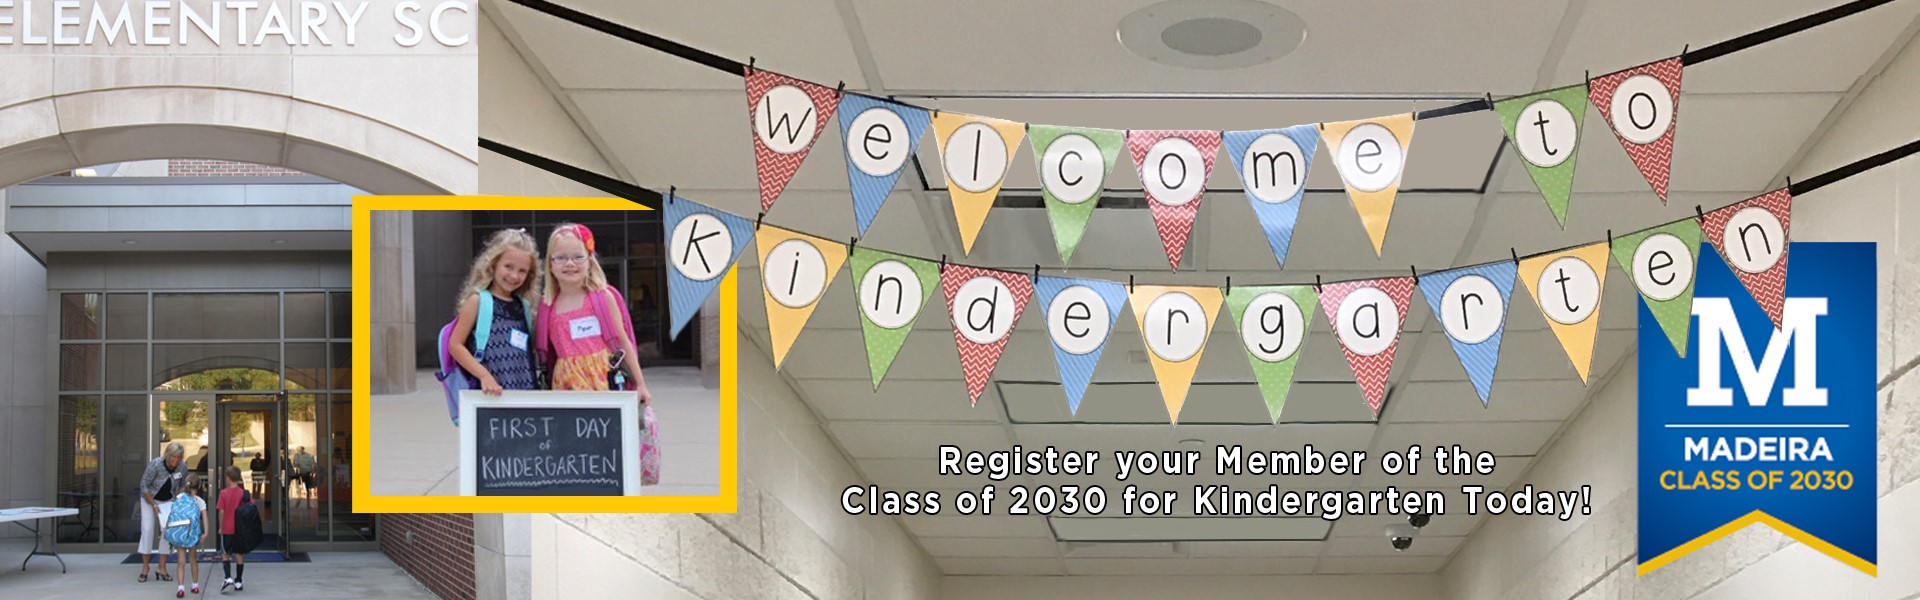 Children of Madeira residents that will be five (5) years old on or before September 30, 2017 are eligible to be registered for Kindergarten for the 2017-2018 school year READ MORE BELOW...